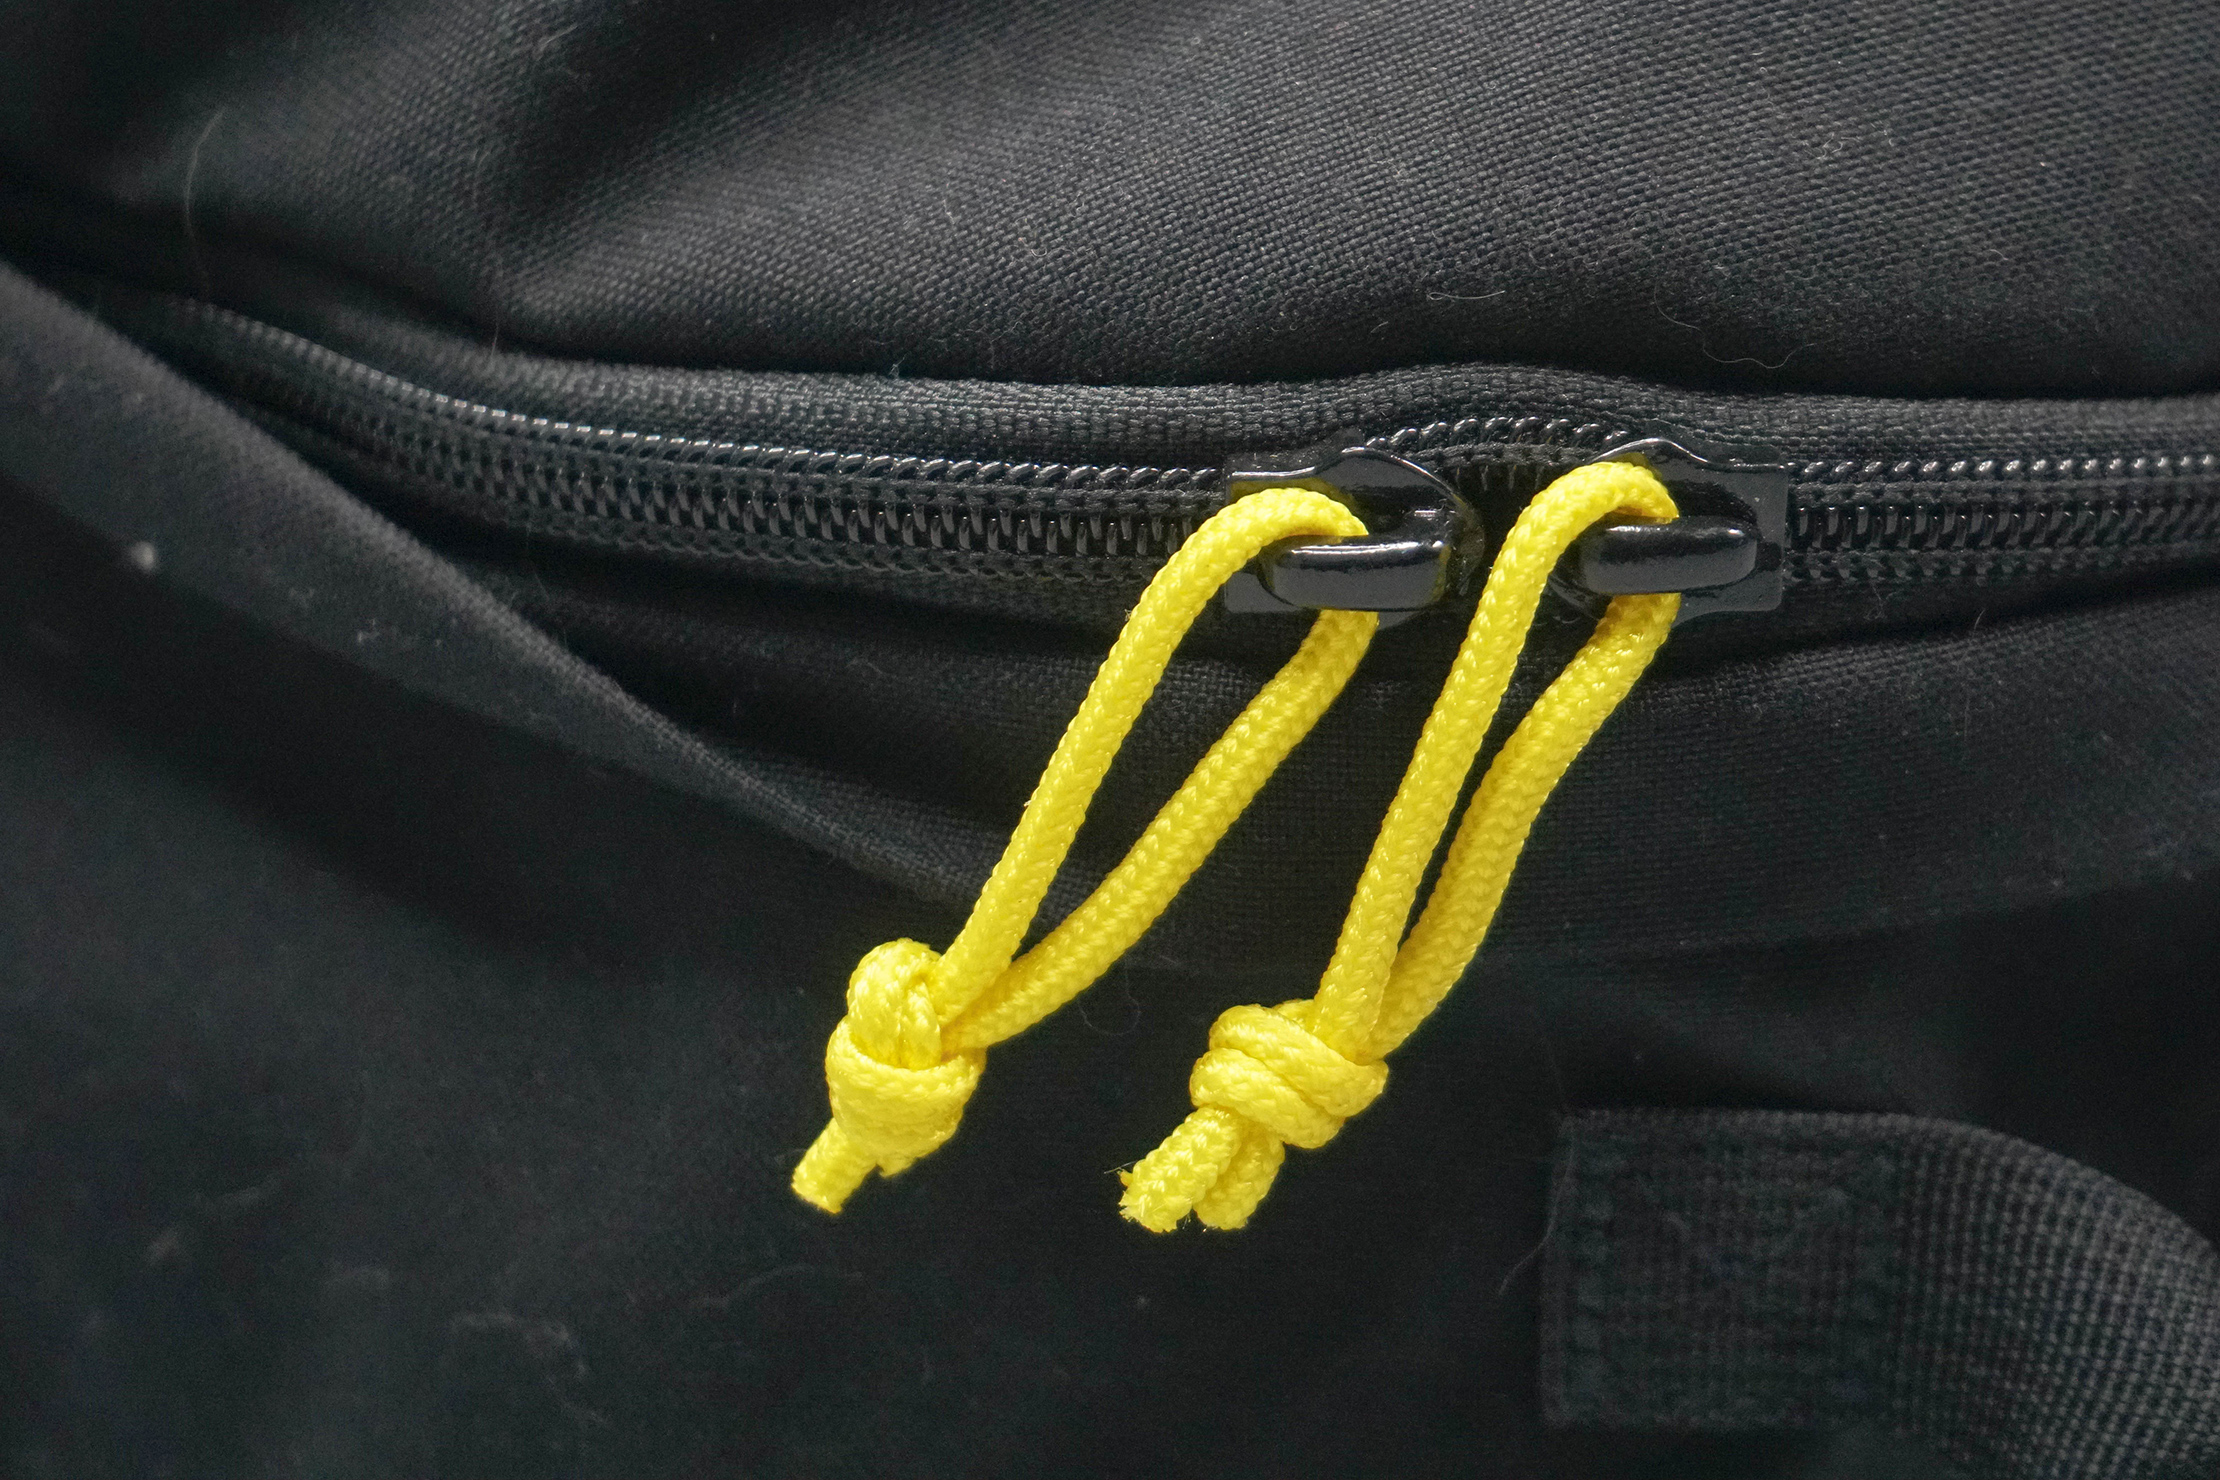 Banana Backpacks Kiri Zippers